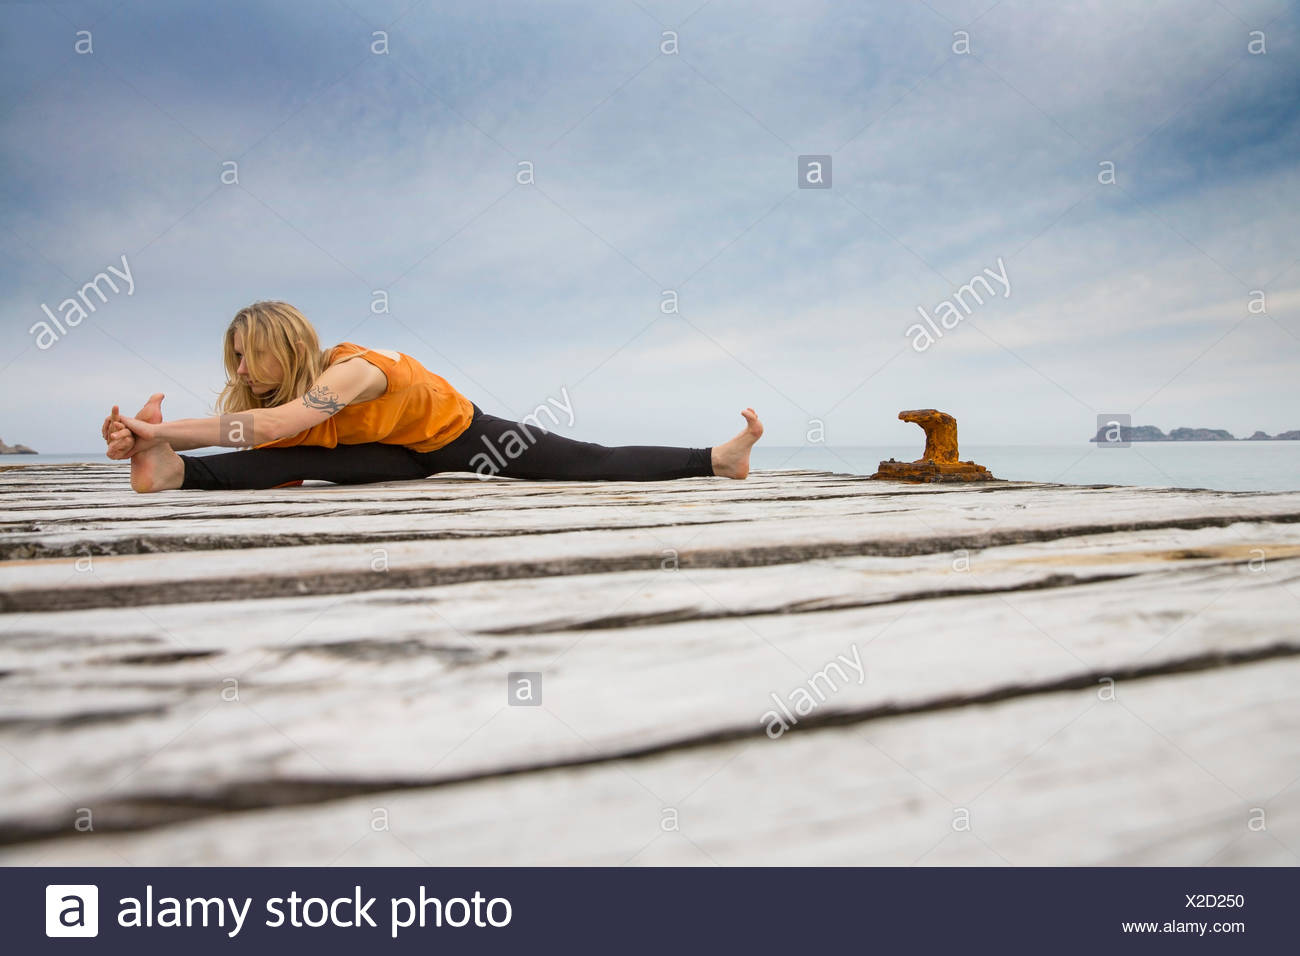 Mid adult woman practicing yoga on wooden sea pier - Stock Image